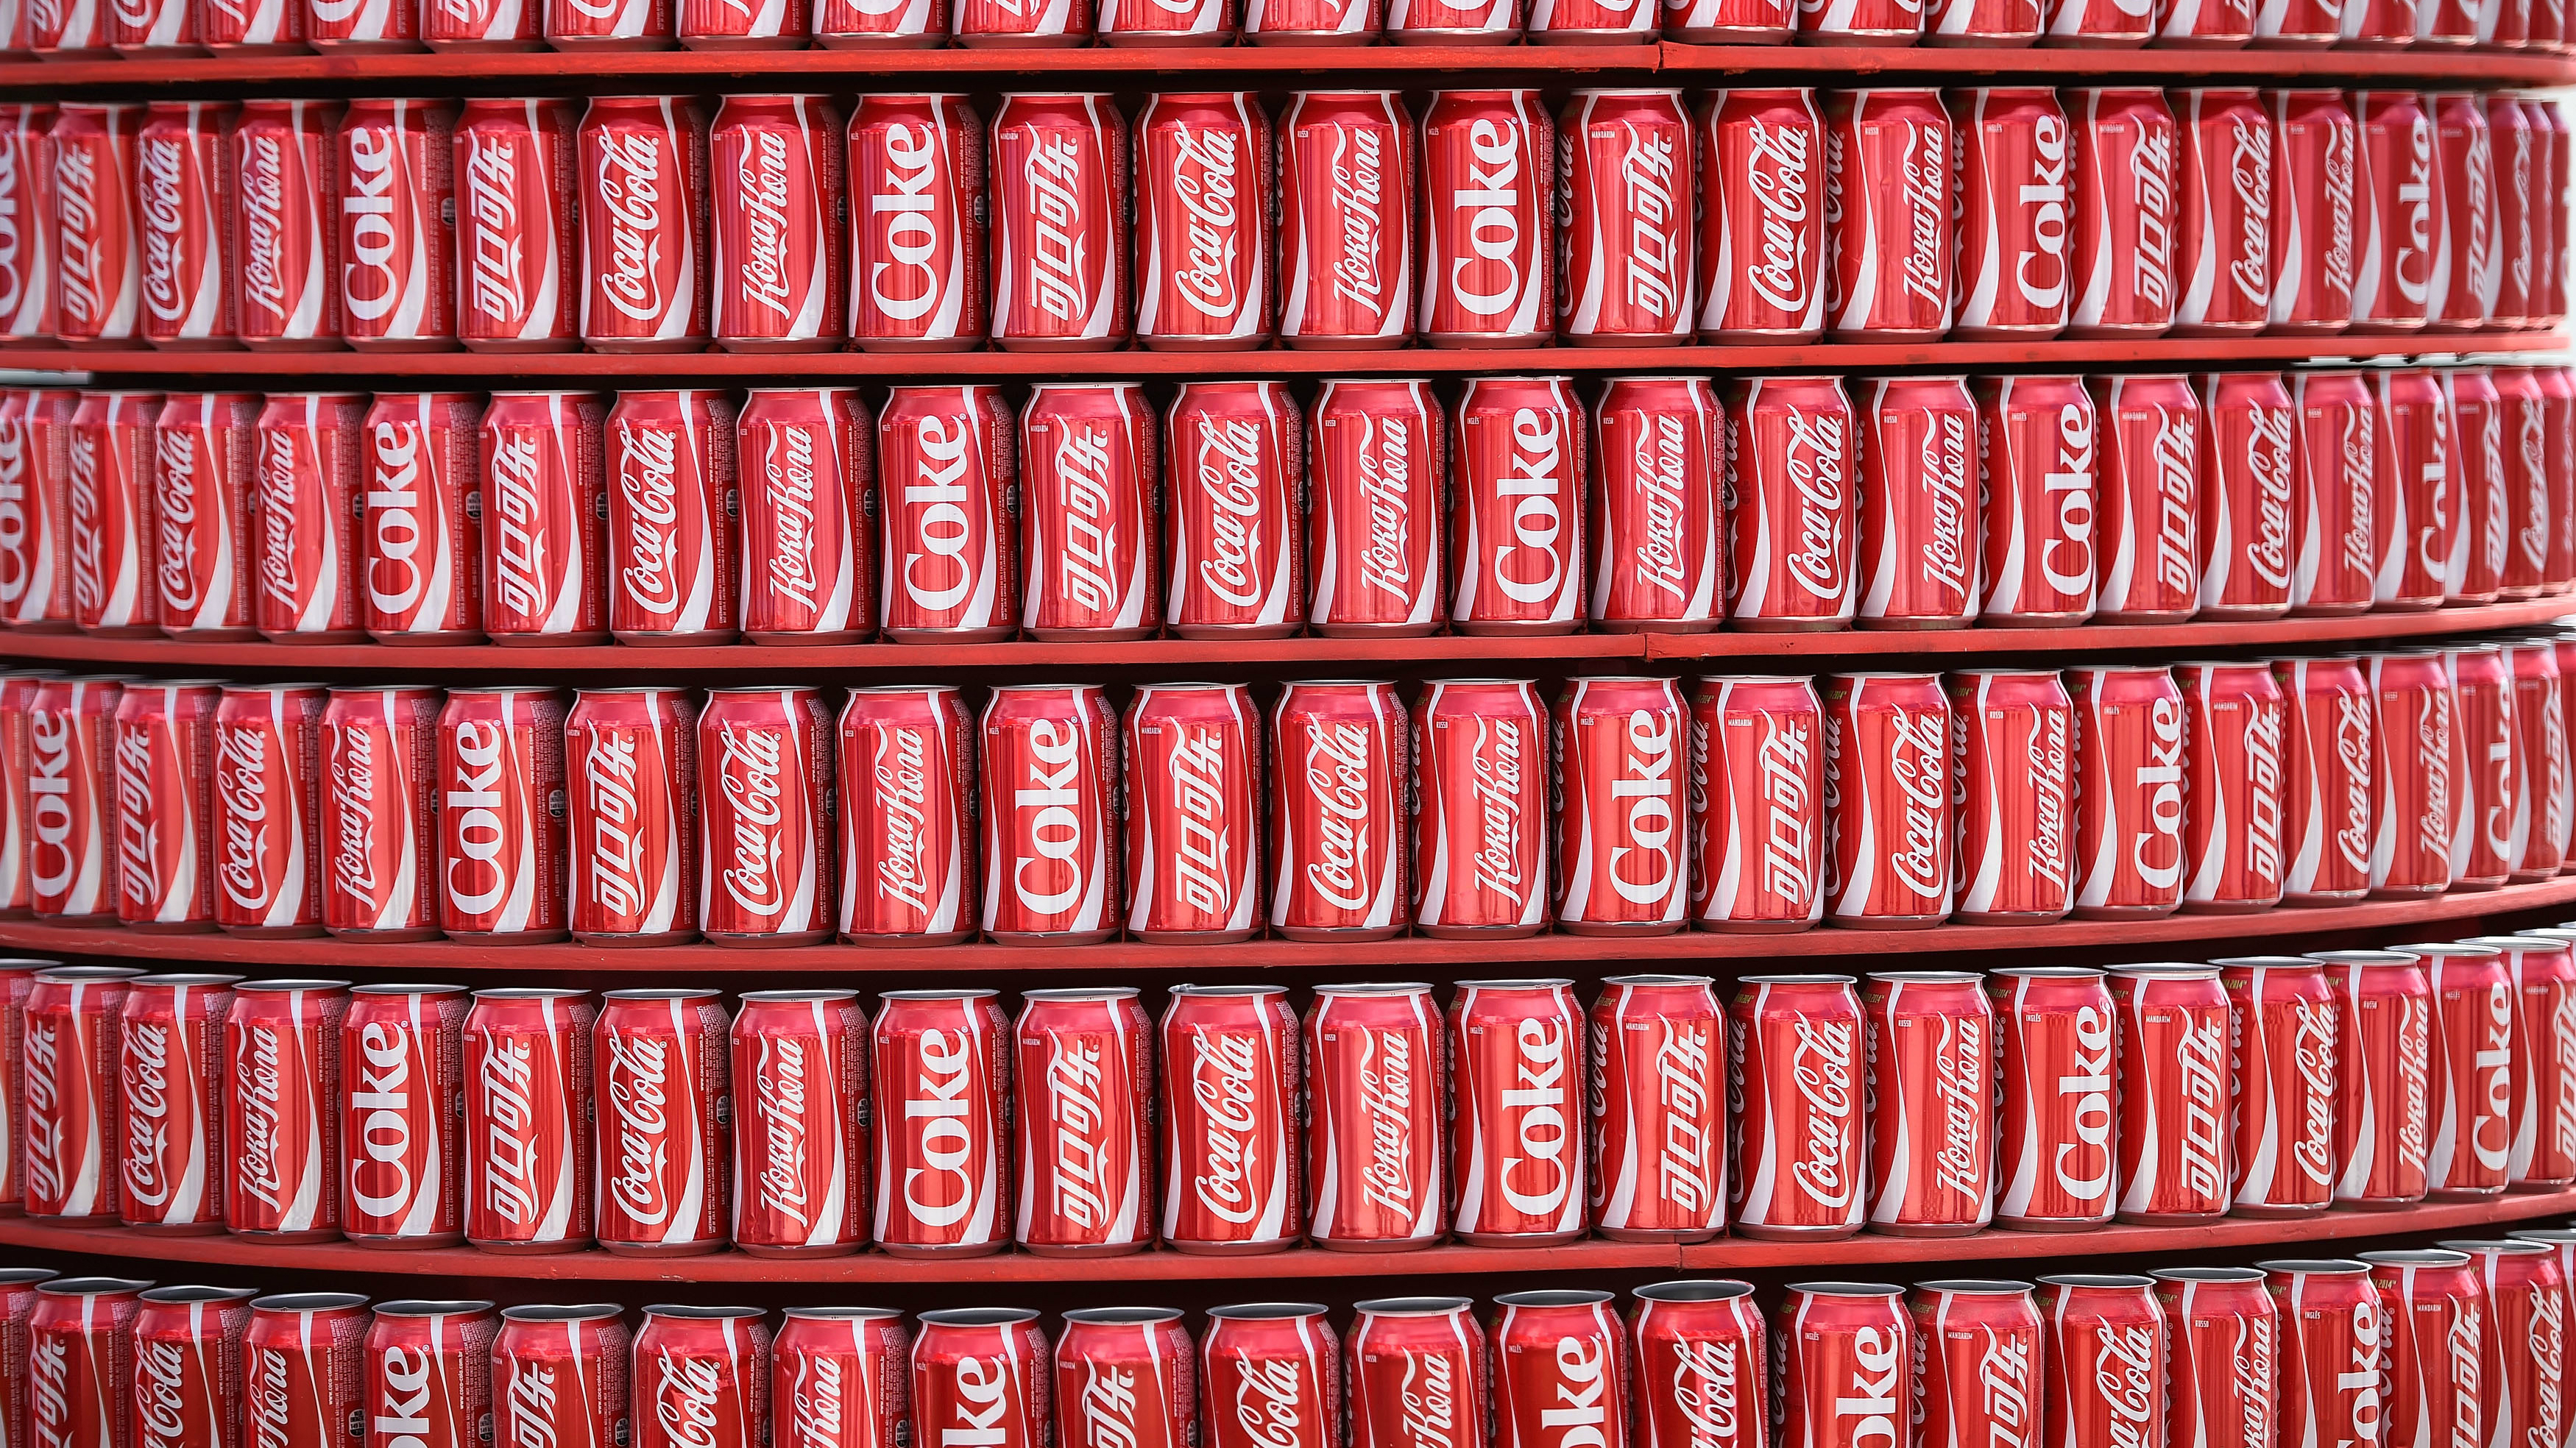 Stacks of soda cans.